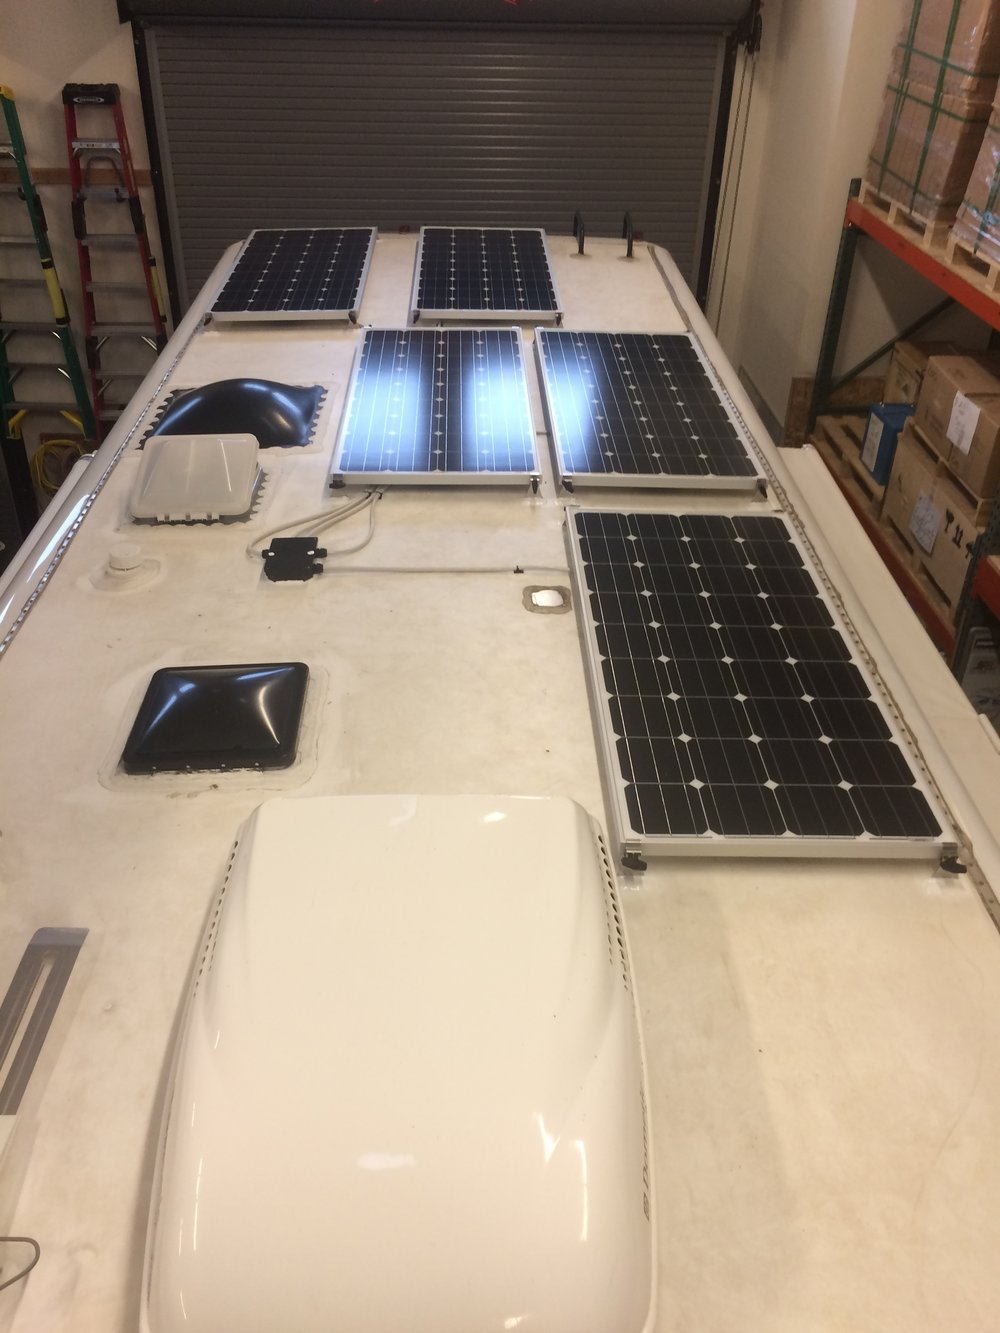 "Equipment Added:   5x SF160 Solar Panels 3x 19.5"" Tilt Bar Sets 1x Roof C-Box 1x SunRunner Victron MPPT 70A (Sub 70A controller for a 50A controller) 1x BlueTooth Smart Dongle 1x Monitor Tri-Metric 2030A 1x Tri-Metric Wire Harness Complete"